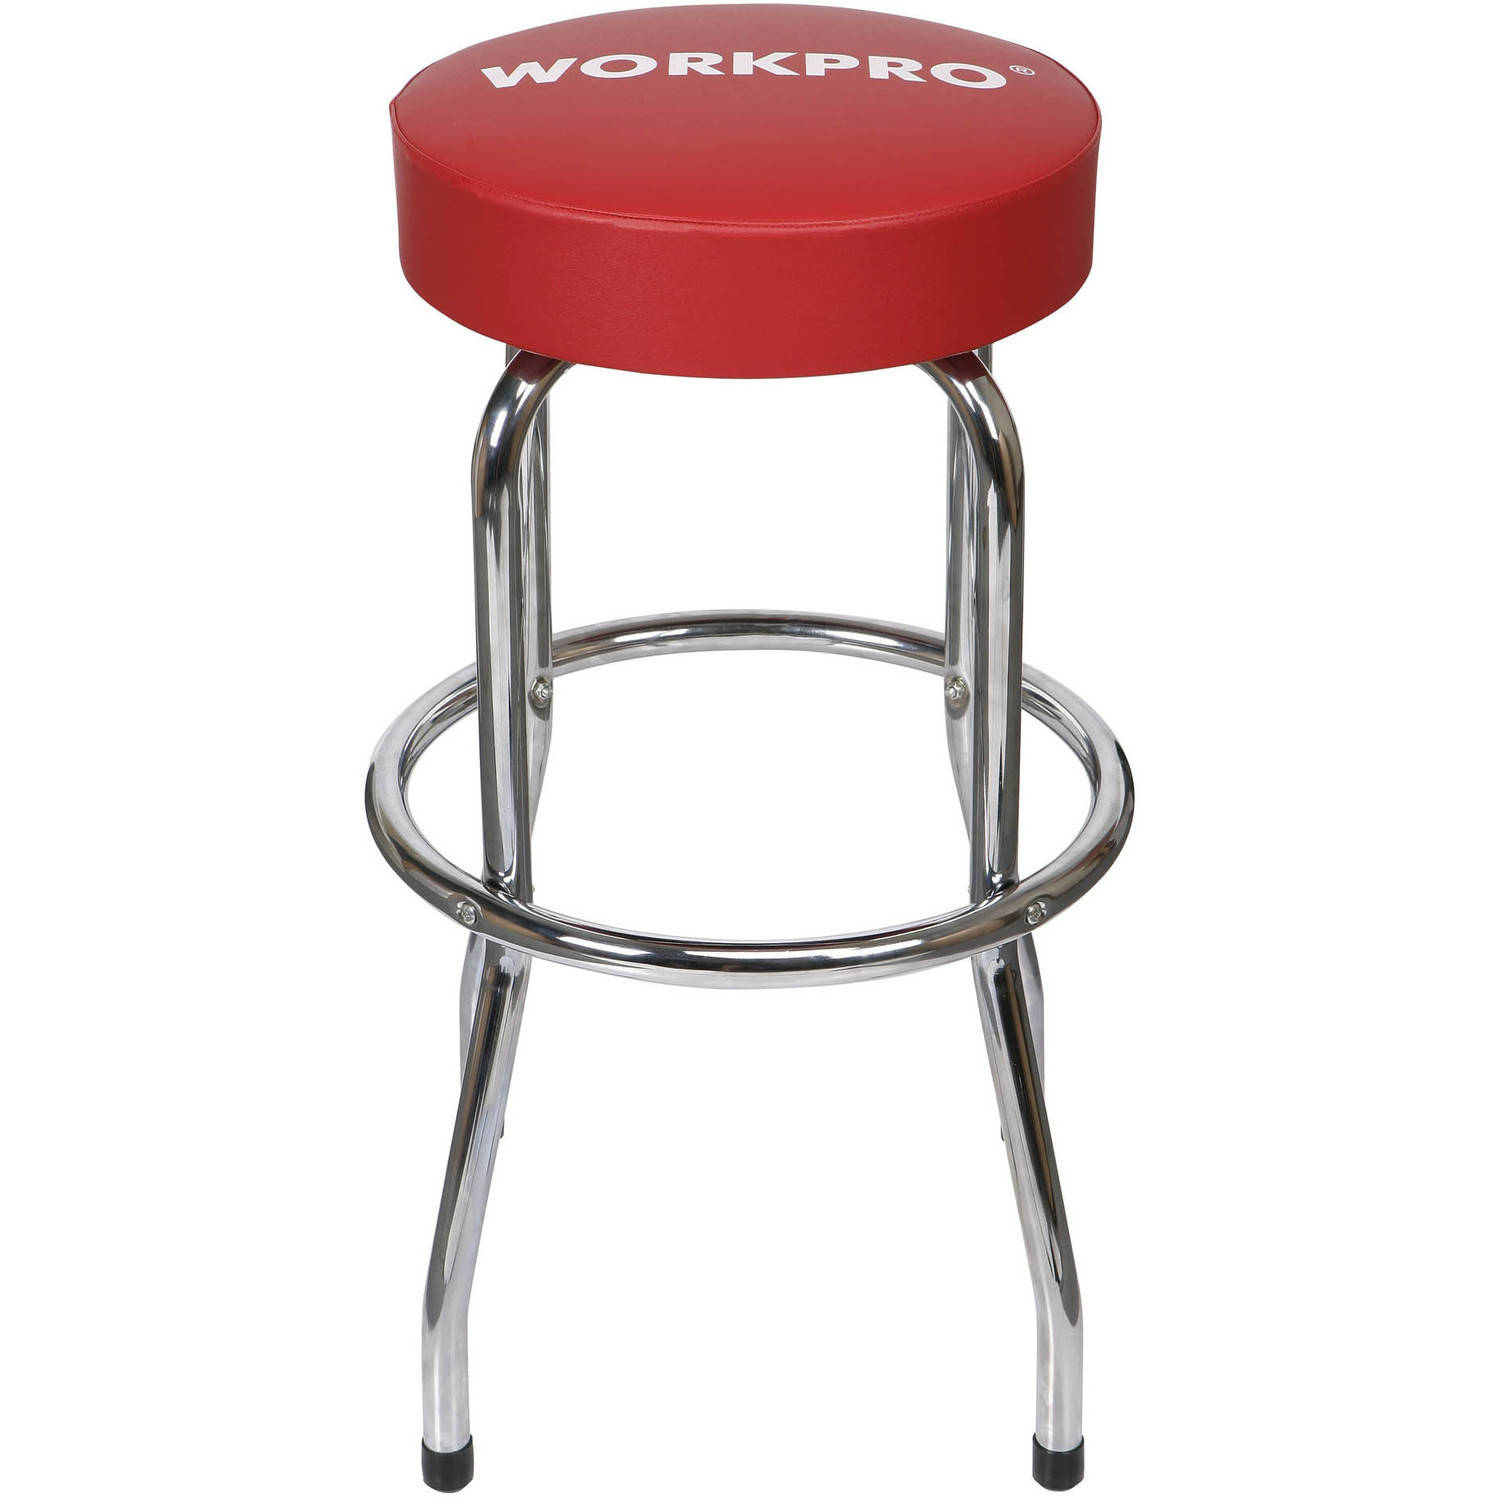 Work Pro Shop Stool - Walmart.com